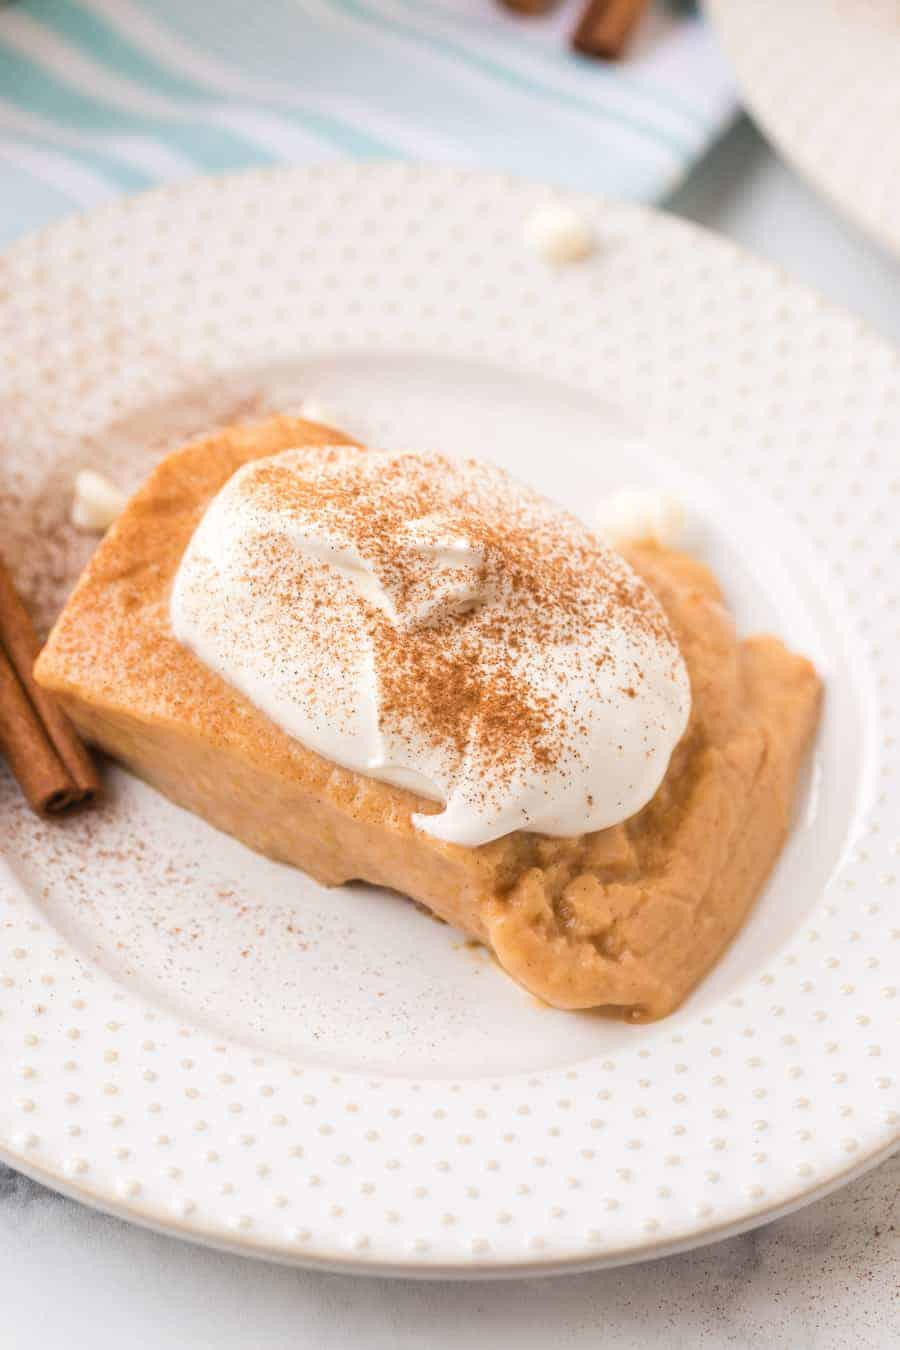 Homemade pumpkin pie pudding cups combine all your favorite sweet and warm flavors of pumpkin pie with the fun experience of enjoying individual pudding cups! #pumpkinpiepudding #puddingcups #pudding #pumpkinpie #pumpkindesserts #pumpkinspice